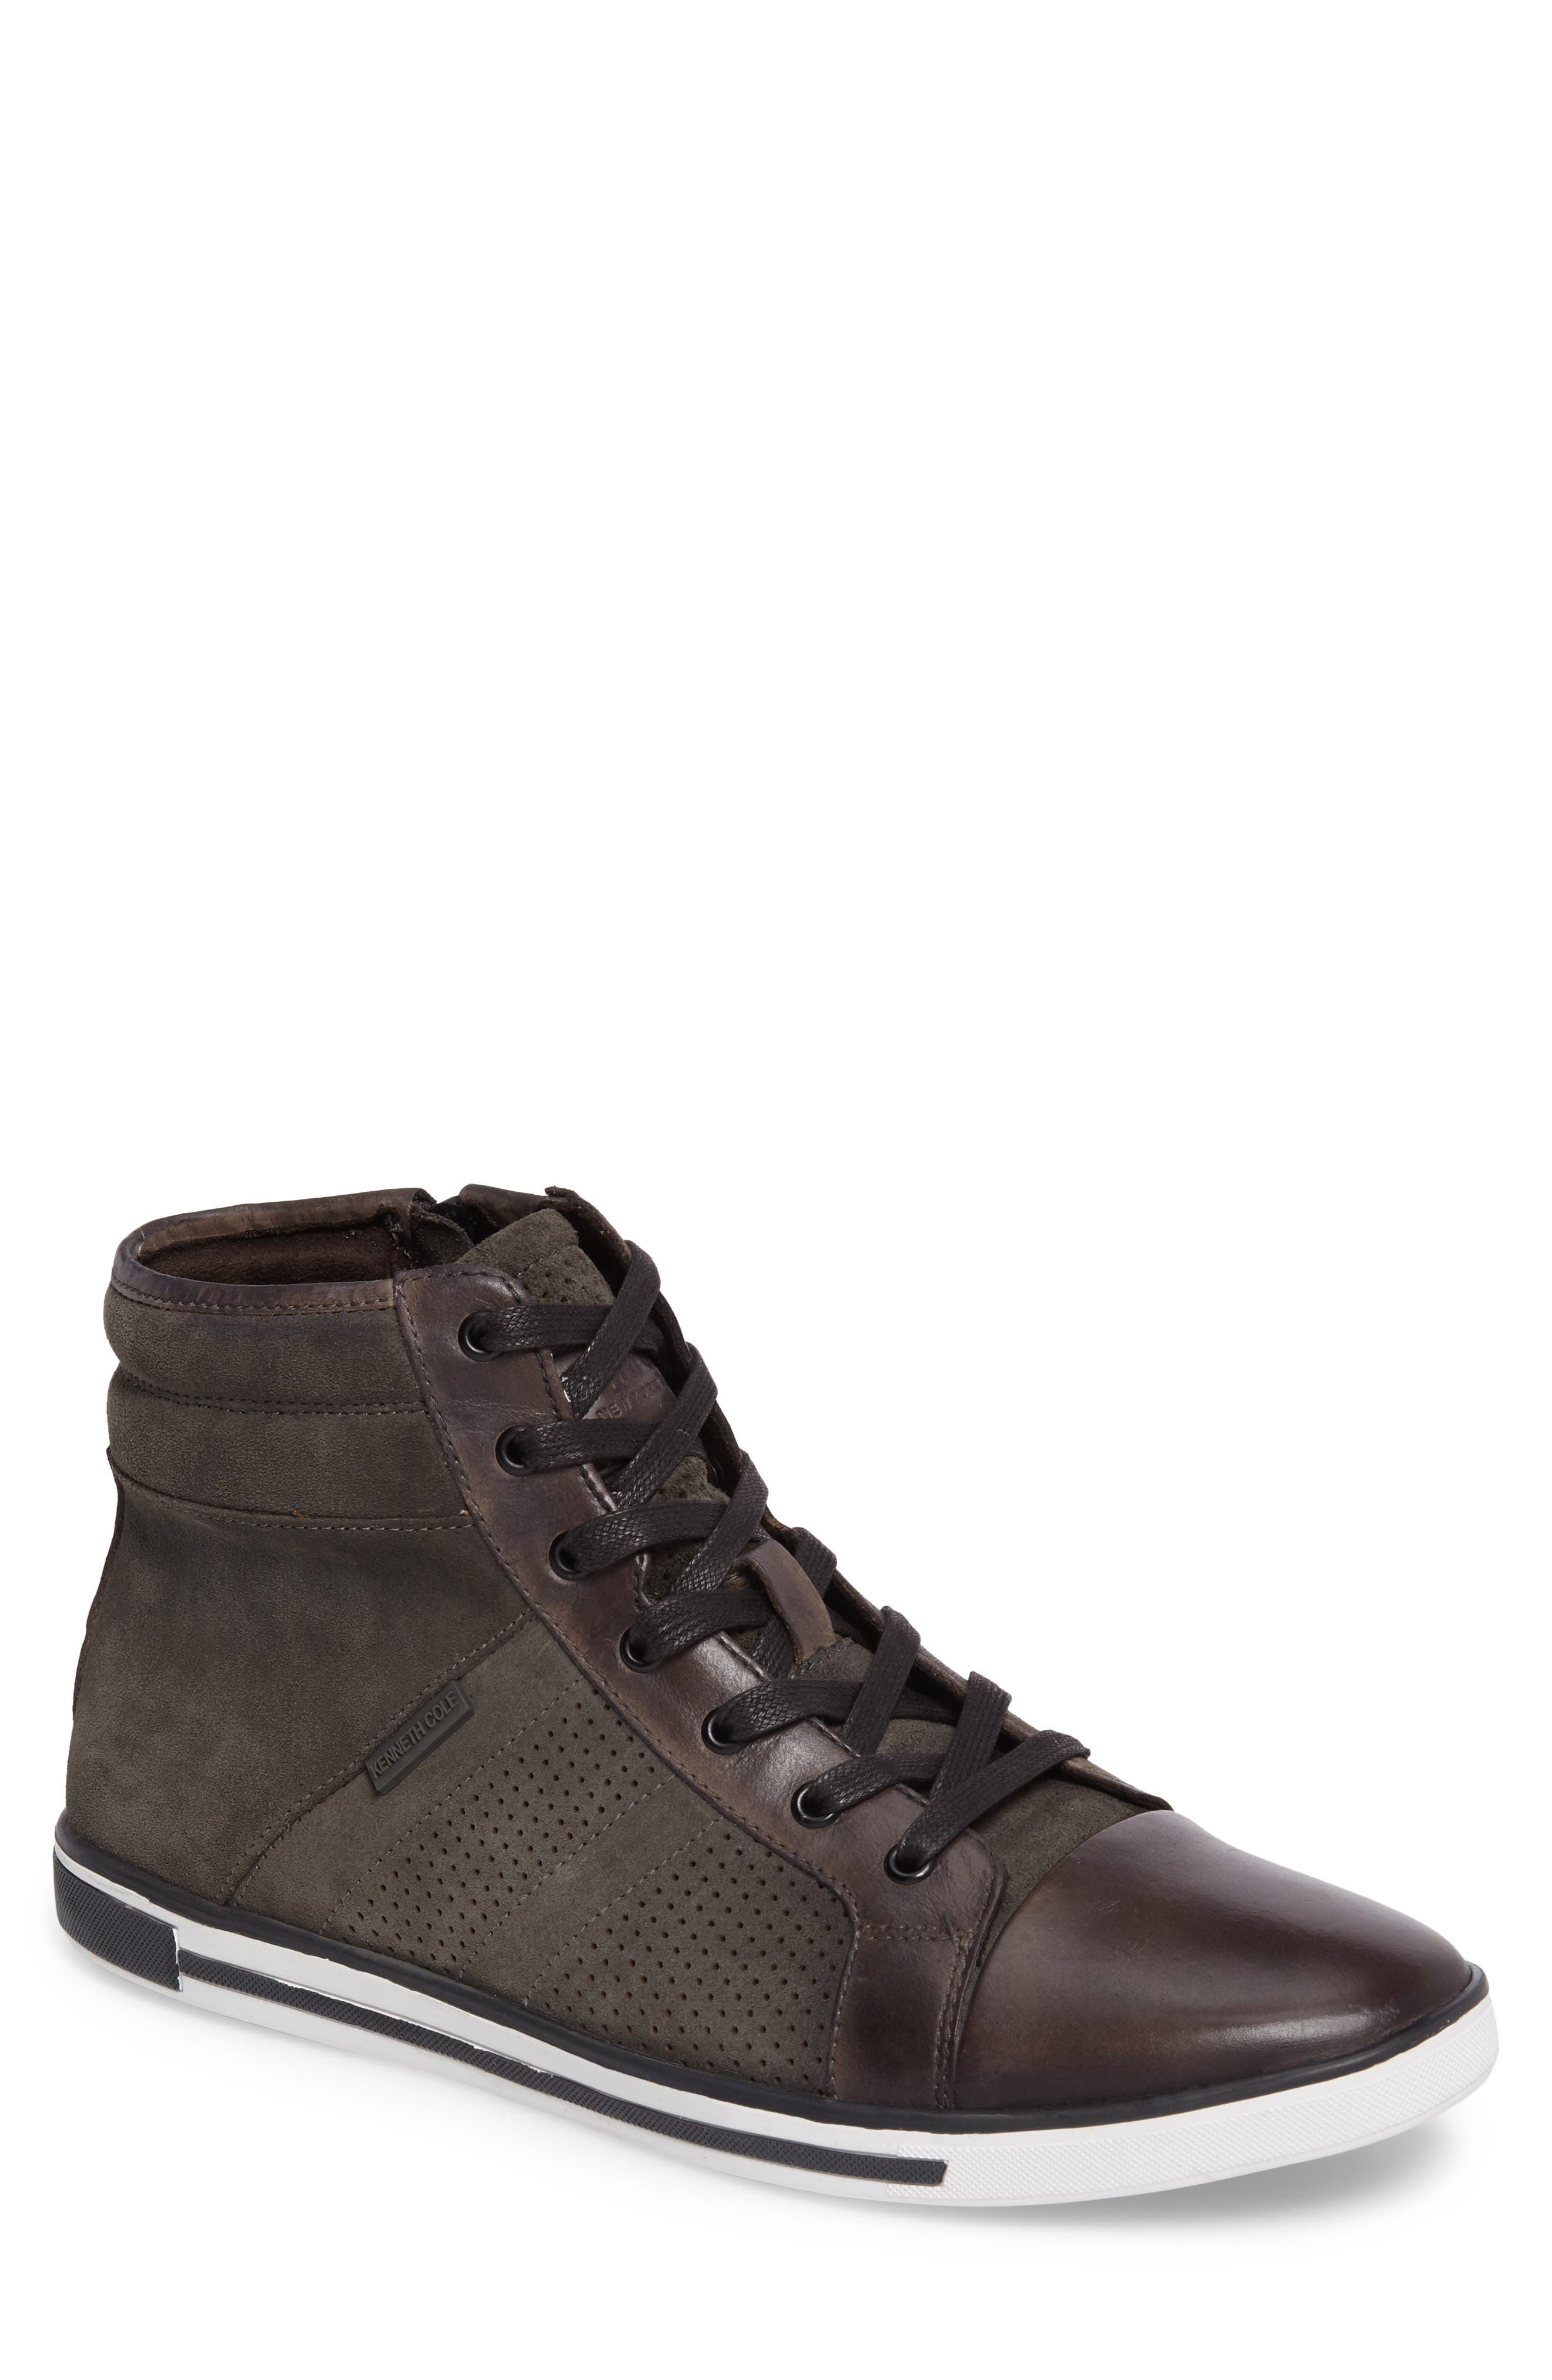 Initial Point Sneaker,                         Main,                         color,